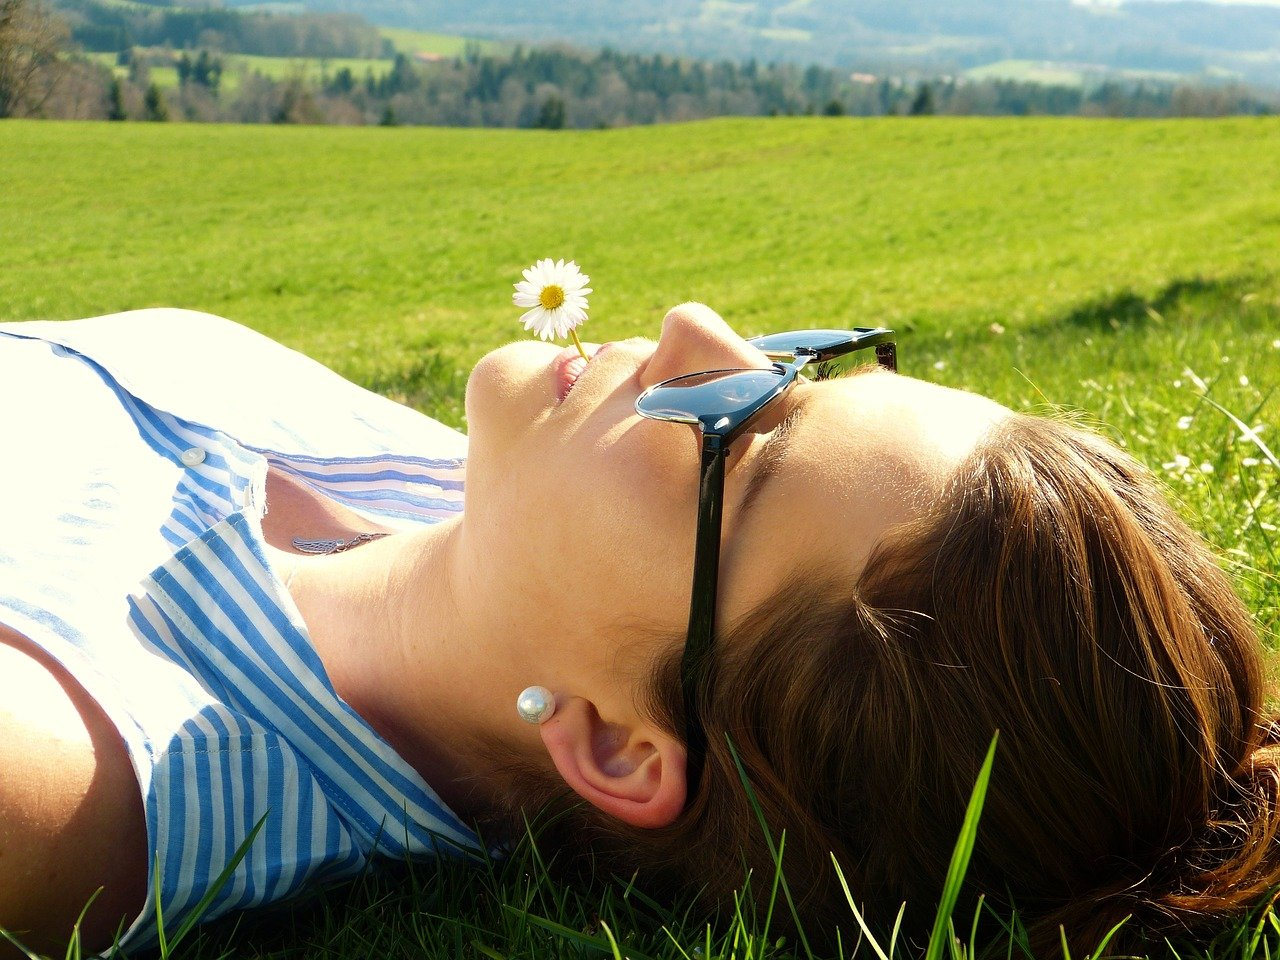 Young Woman Meadow Concerns Rest  - silviarita / Pixabay